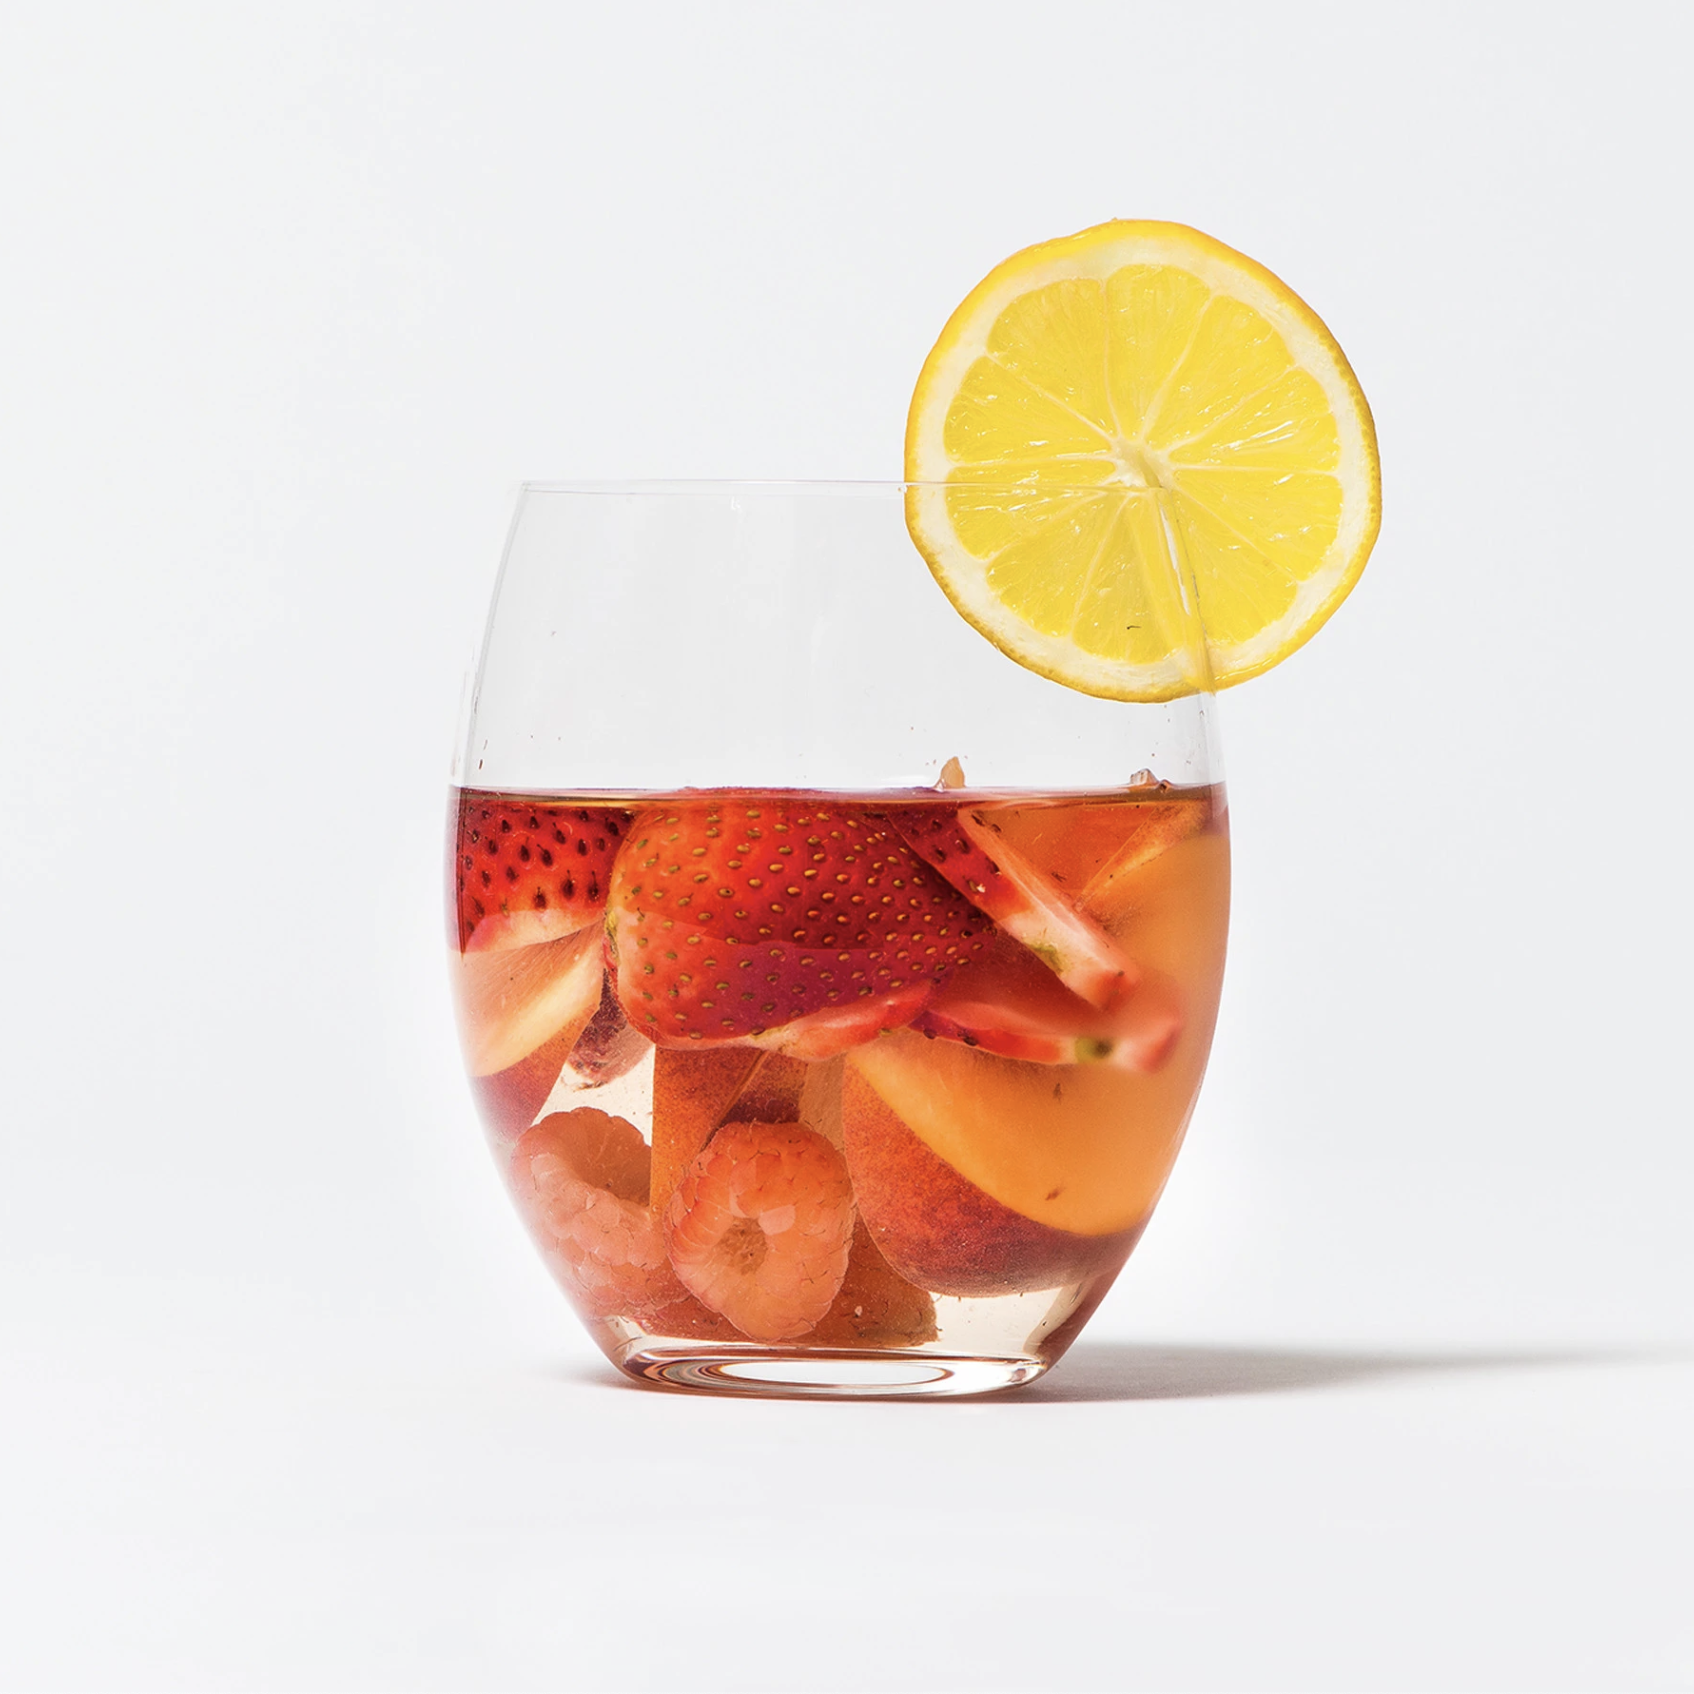 5 Festive Beverages to Bring to Holiday Dinner That Aren't Wine